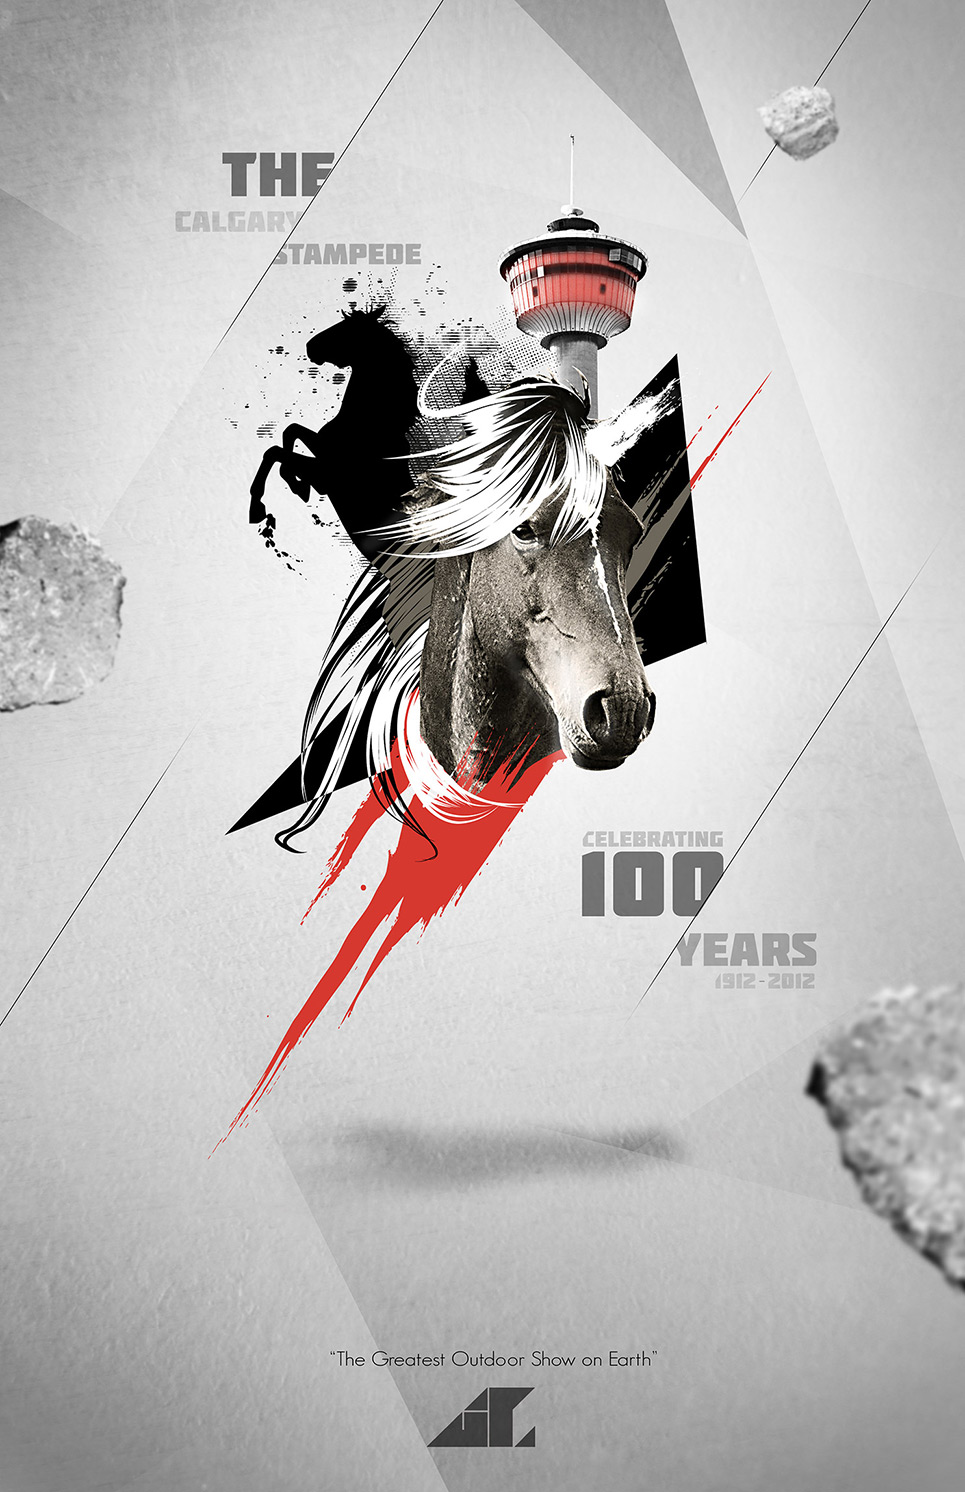 Calgary Stampede 100th Anniversary Poster